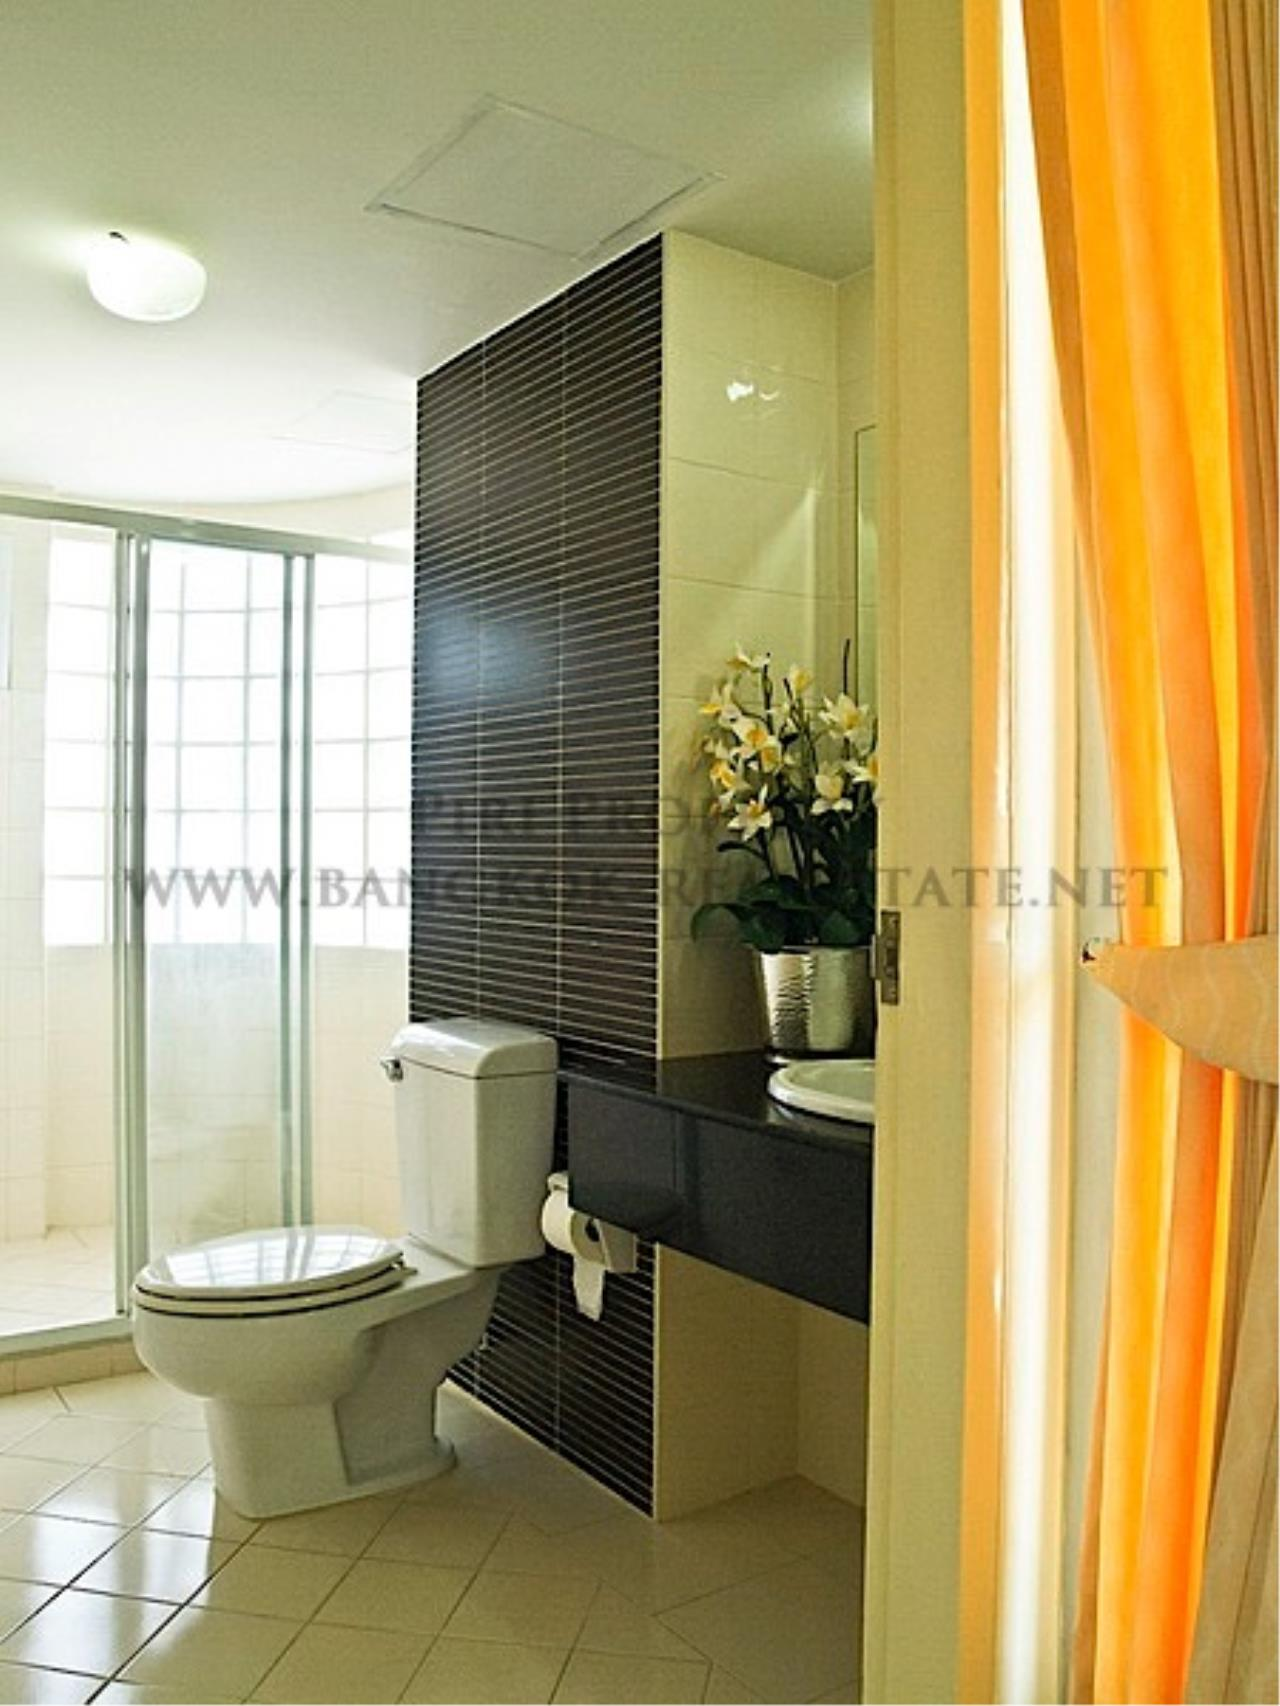 Piri Property Agency's Nicely Decorated Unit in Prime Area 4